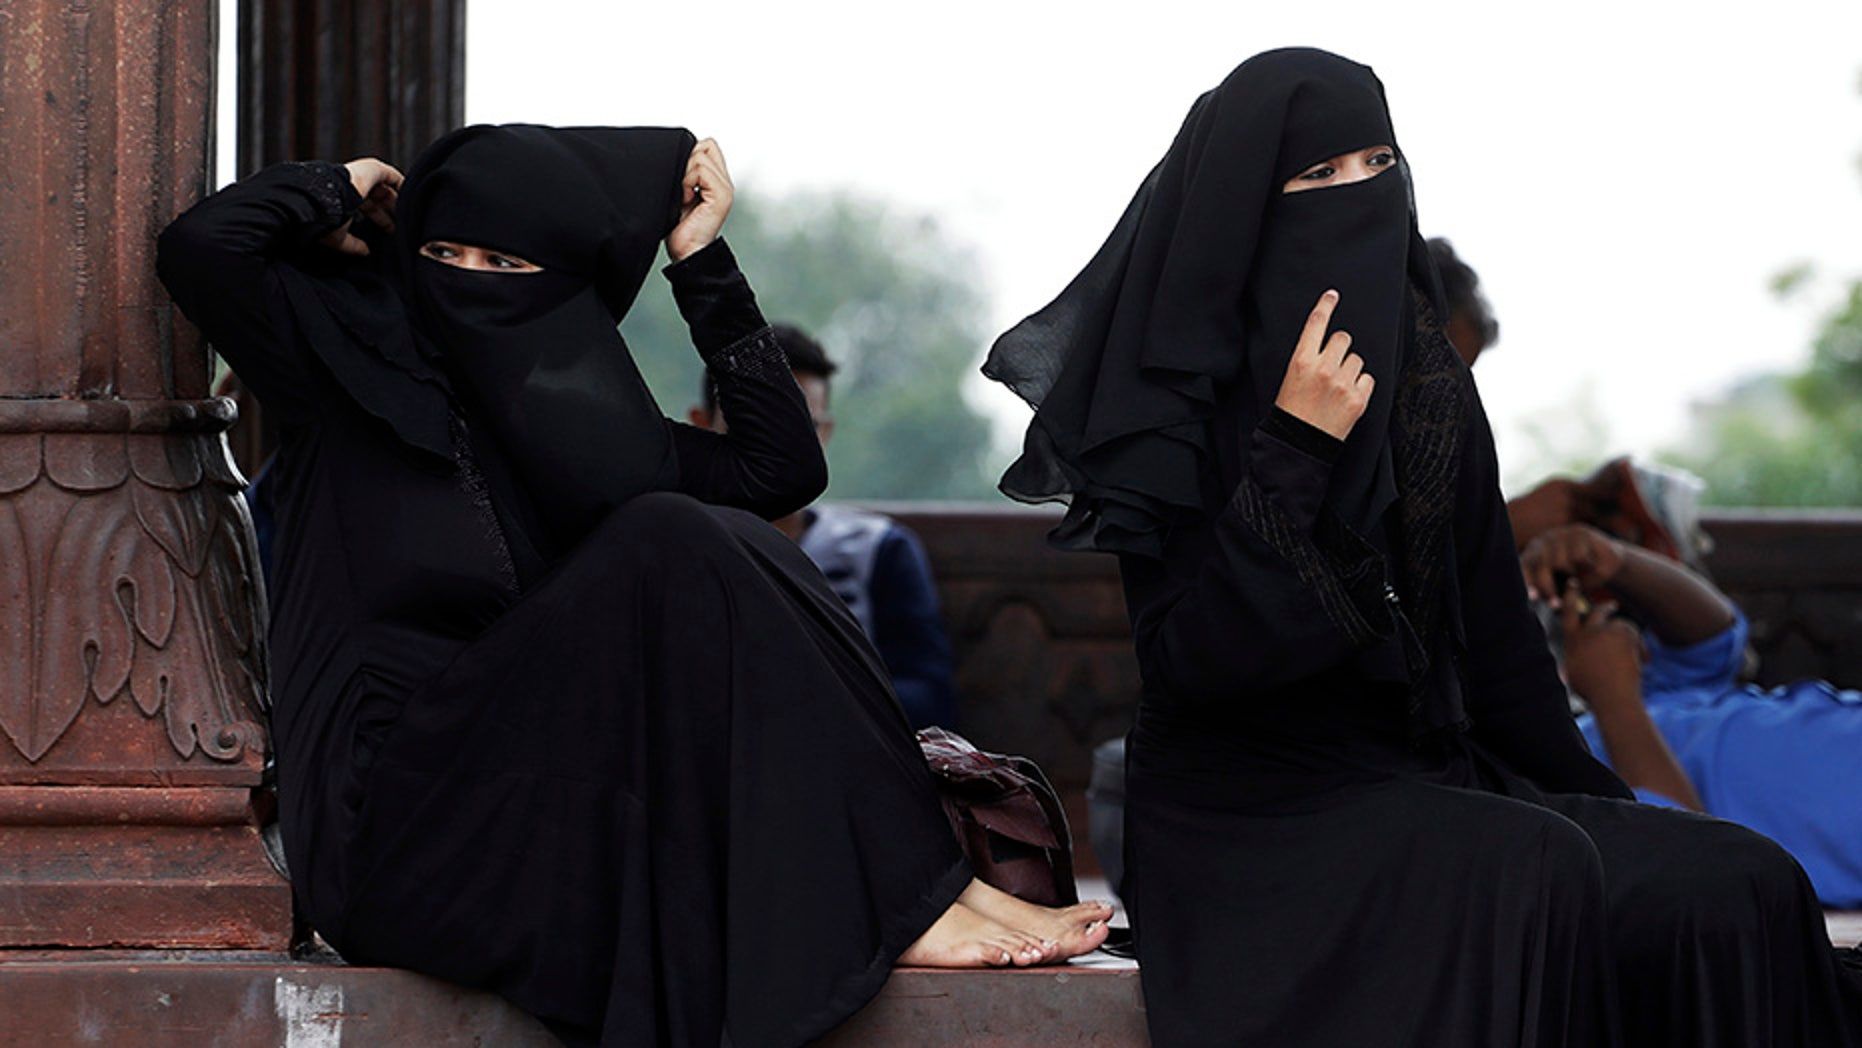 Indian Muslim women rest inside Jama Masjid mosque in New Delhi, India. India's government has approved an ordinance to implement a top court ruling striking down the Muslim practice that allows men to instantly divorce.